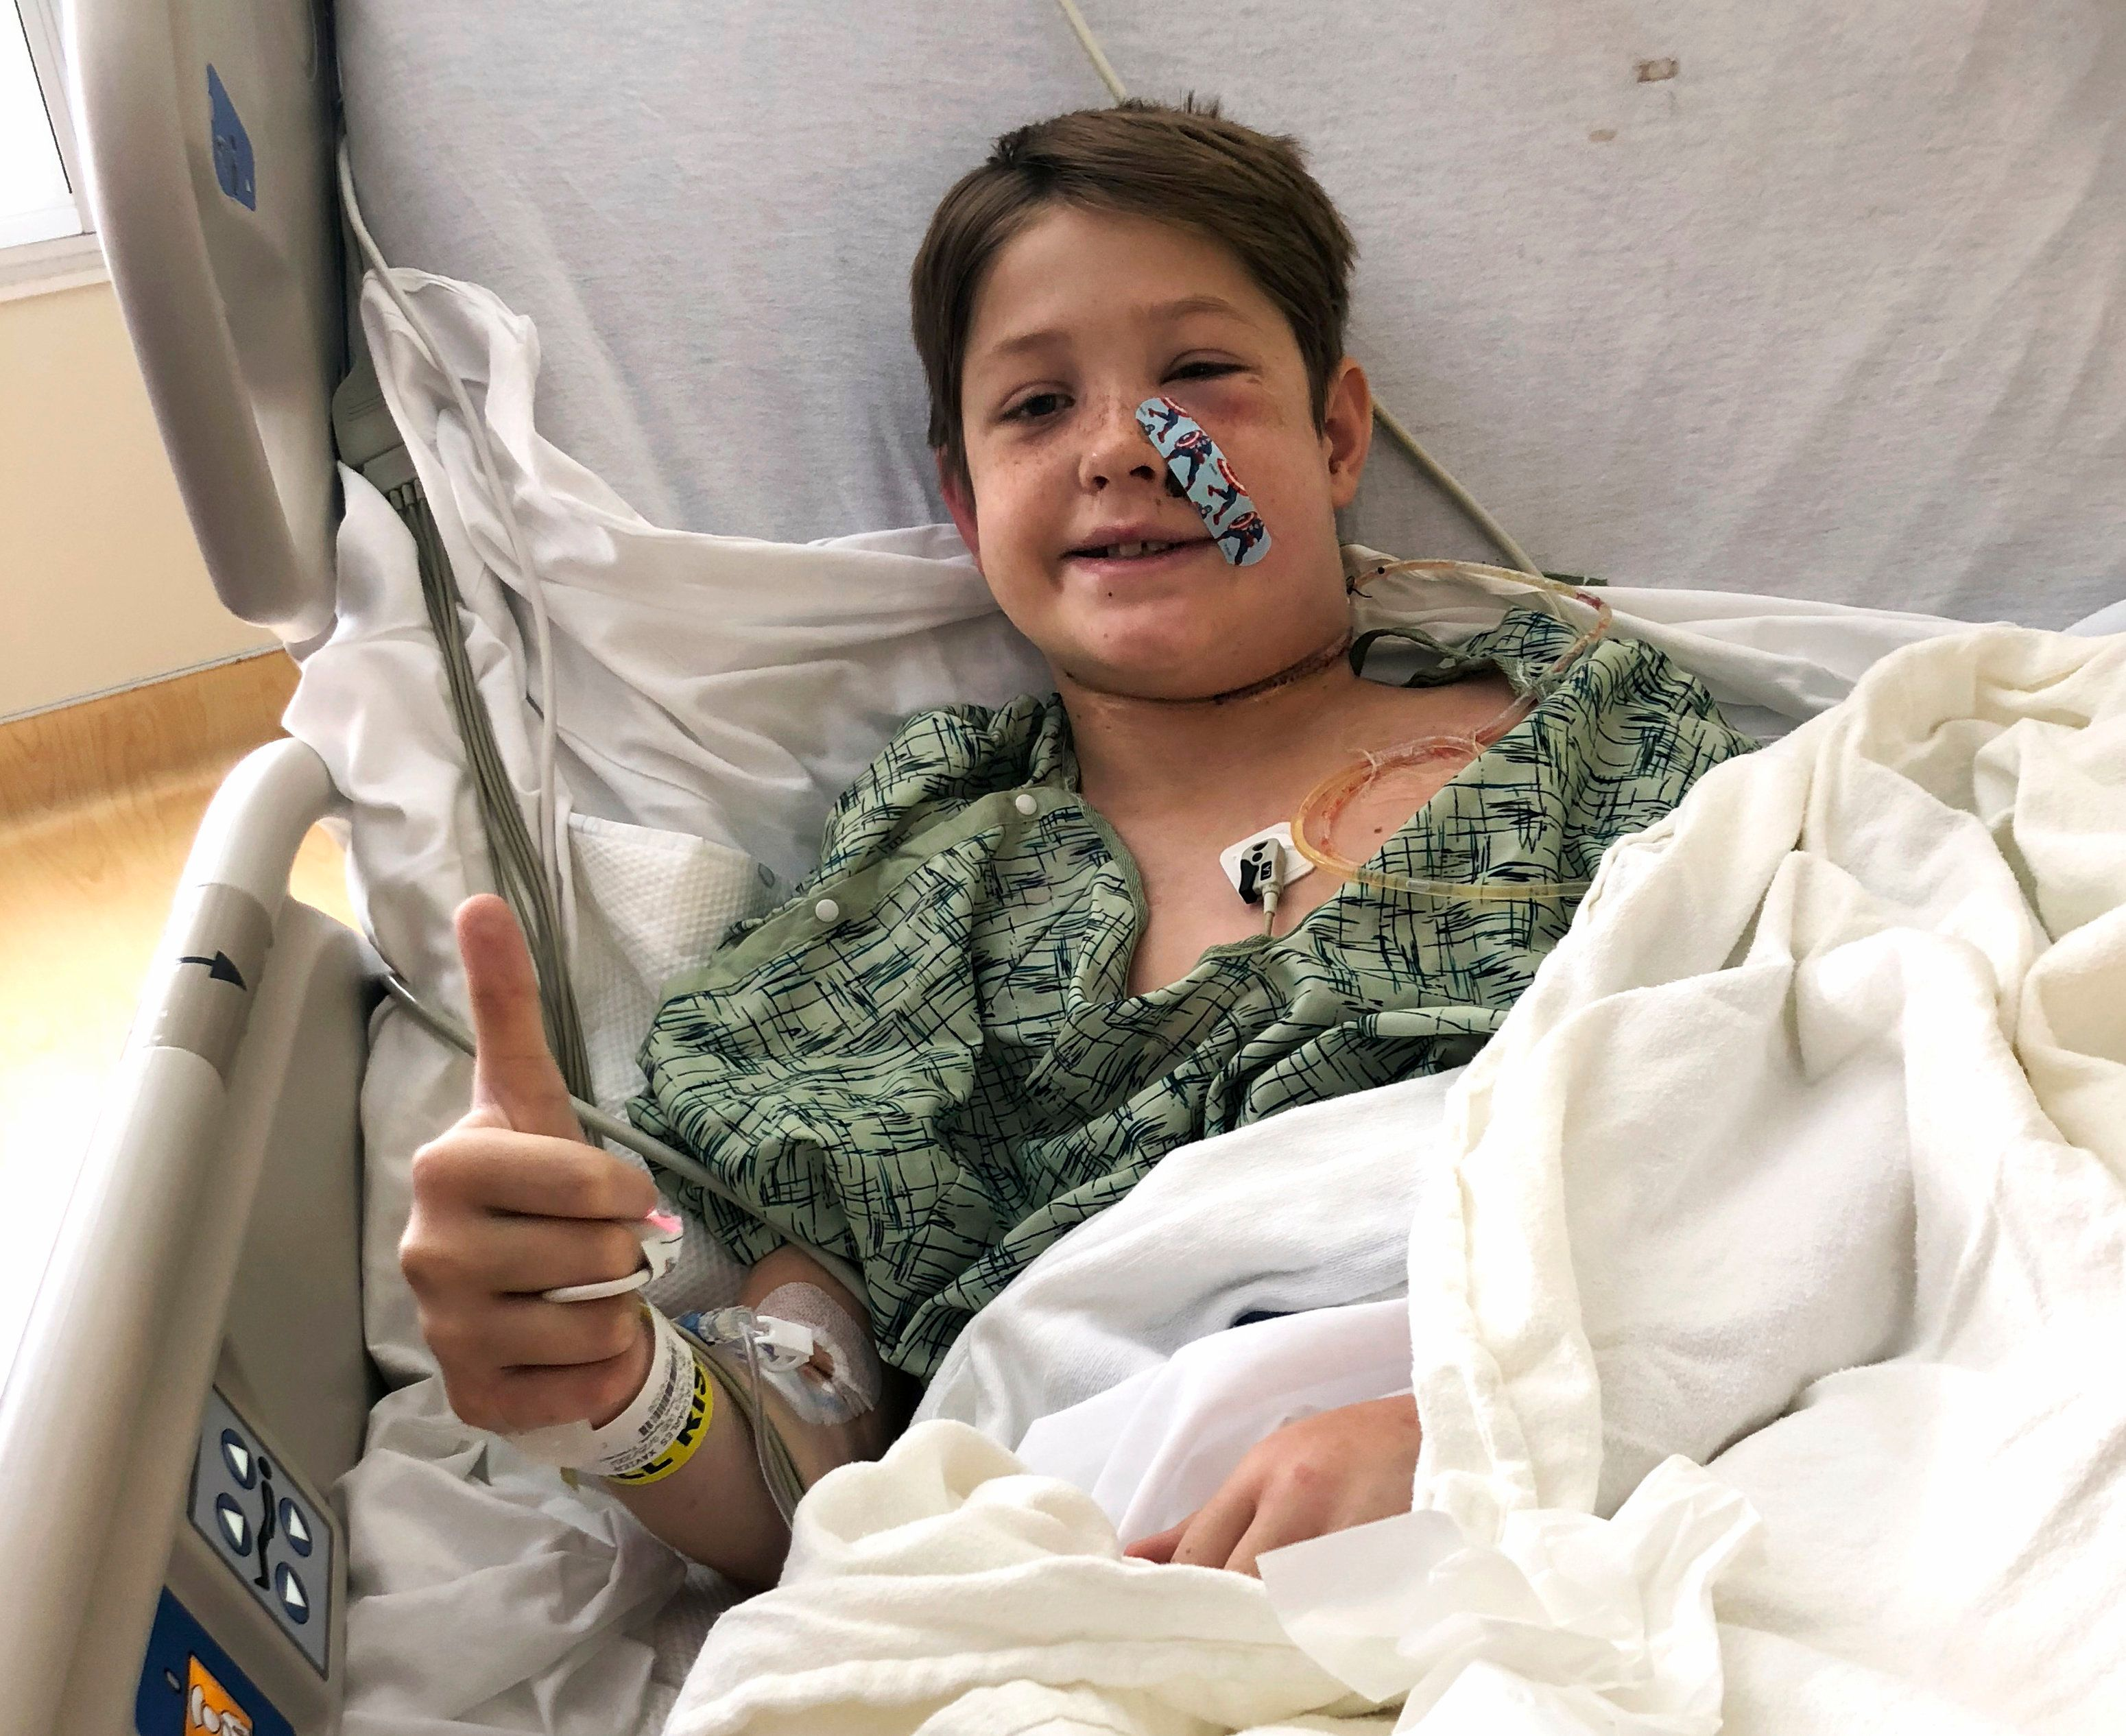 Missouri boy miraculously survives after meat skewer pierces skull